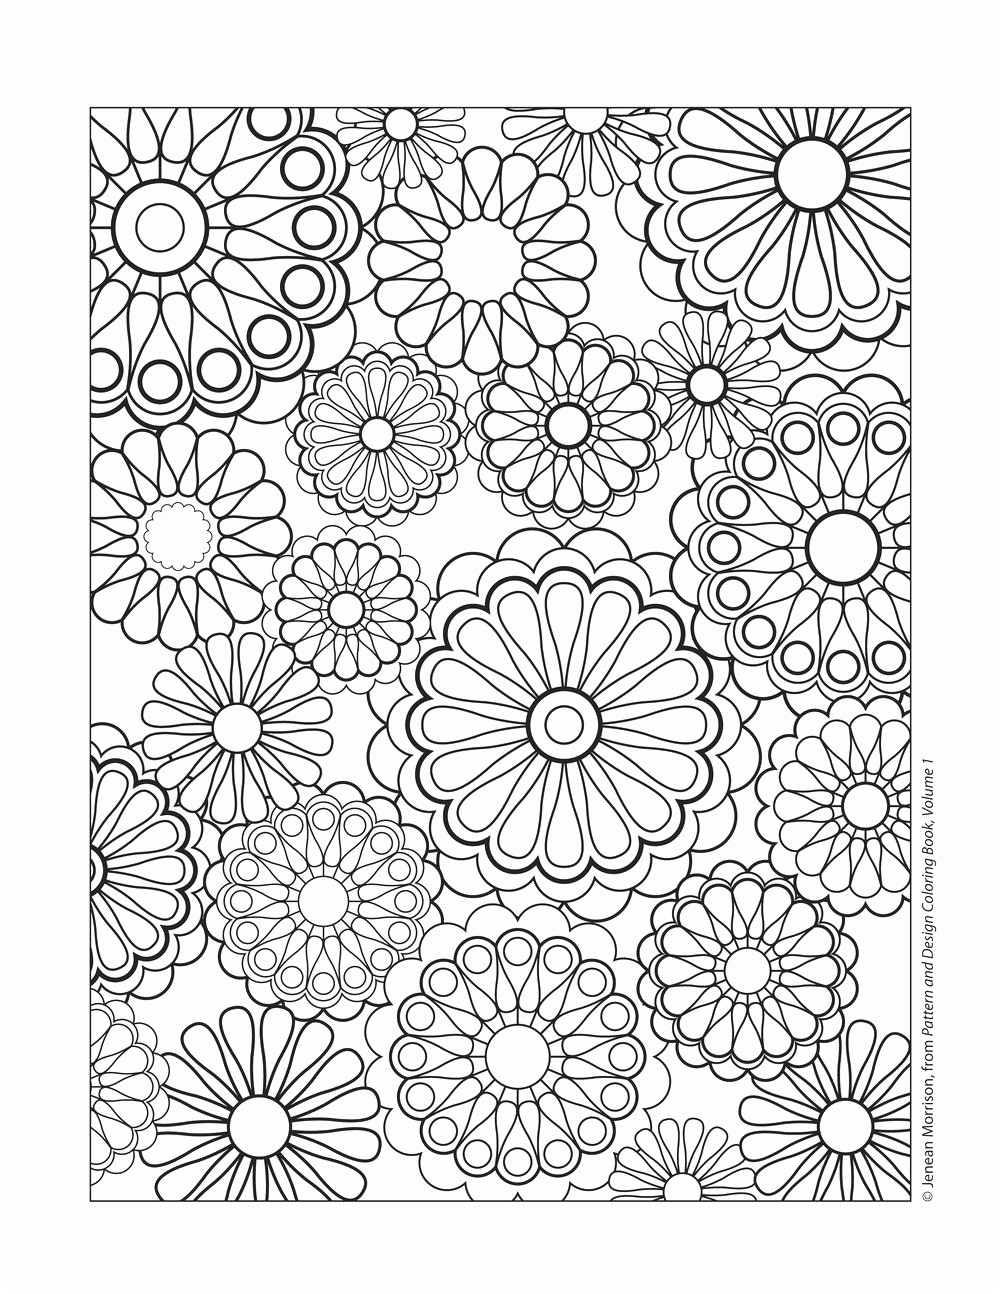 coloring pages games Download-Unique Coloring Pages Free Coloring Games Unique Coloring Book 0d Se Telefony Info Se 4-g